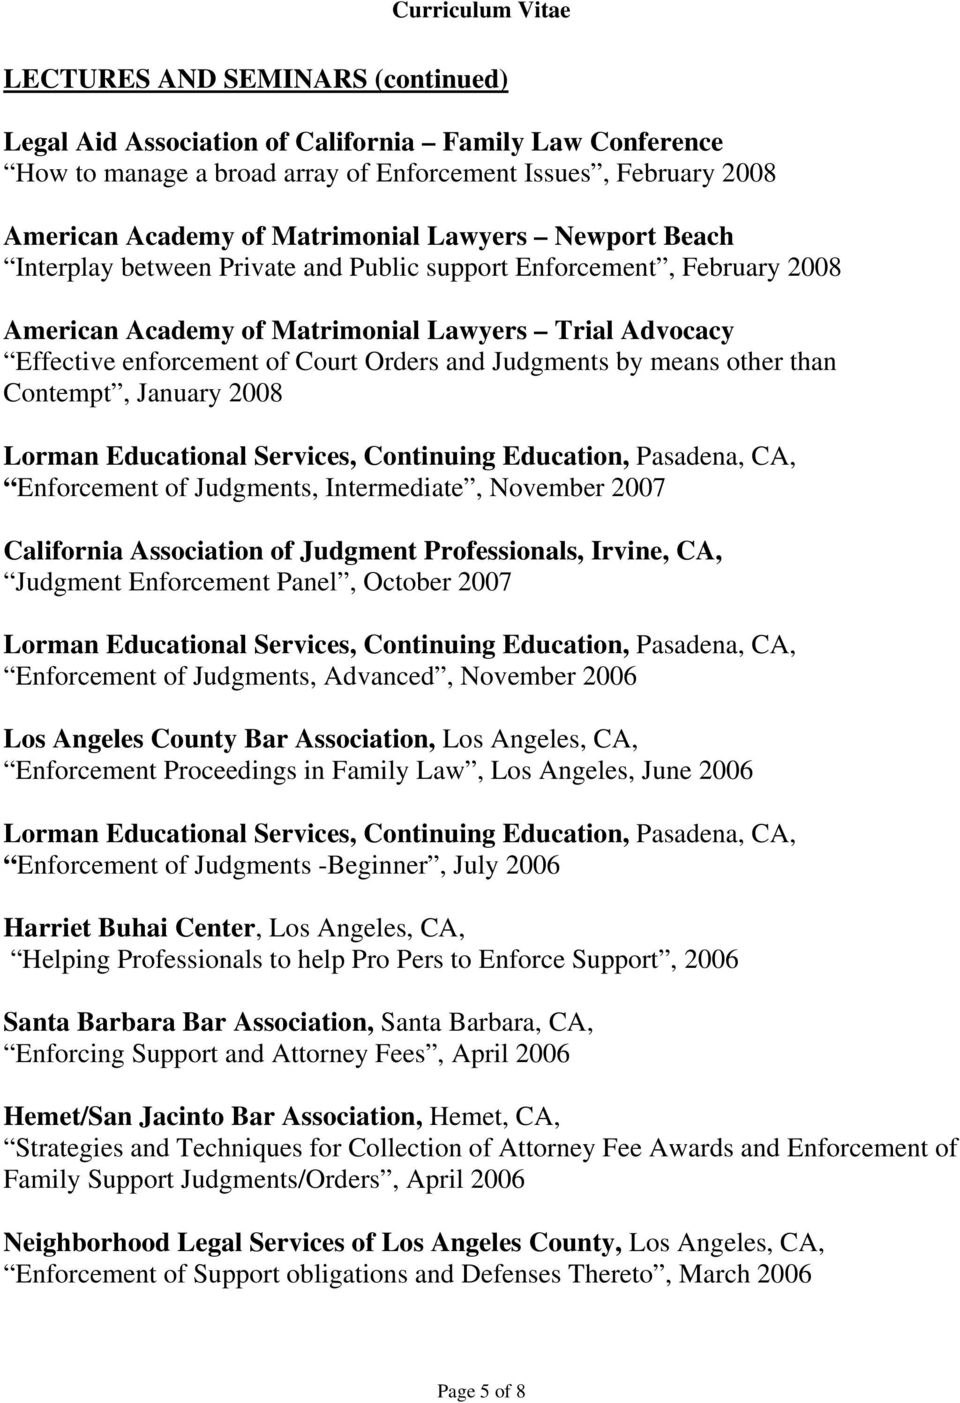 means other than Contempt, January 2008 Enforcement of Judgments, Intermediate, November 2007 California Association of Judgment Professionals, Irvine, CA, Judgment Enforcement Panel, October 2007